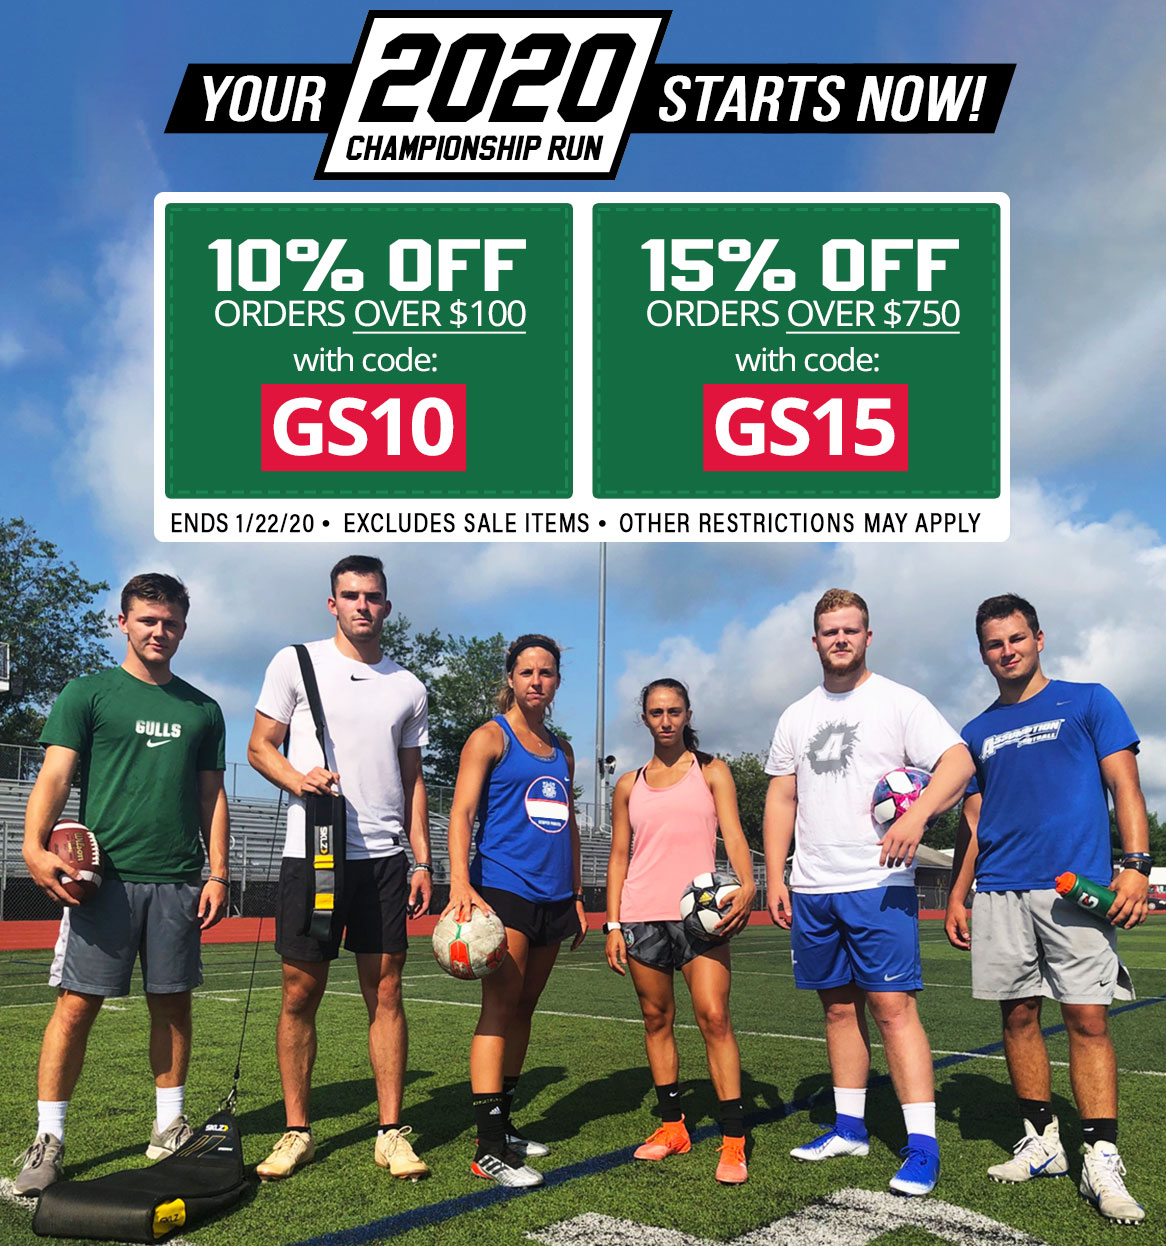 Your championship run starts now! Gear up for spring sports and save!